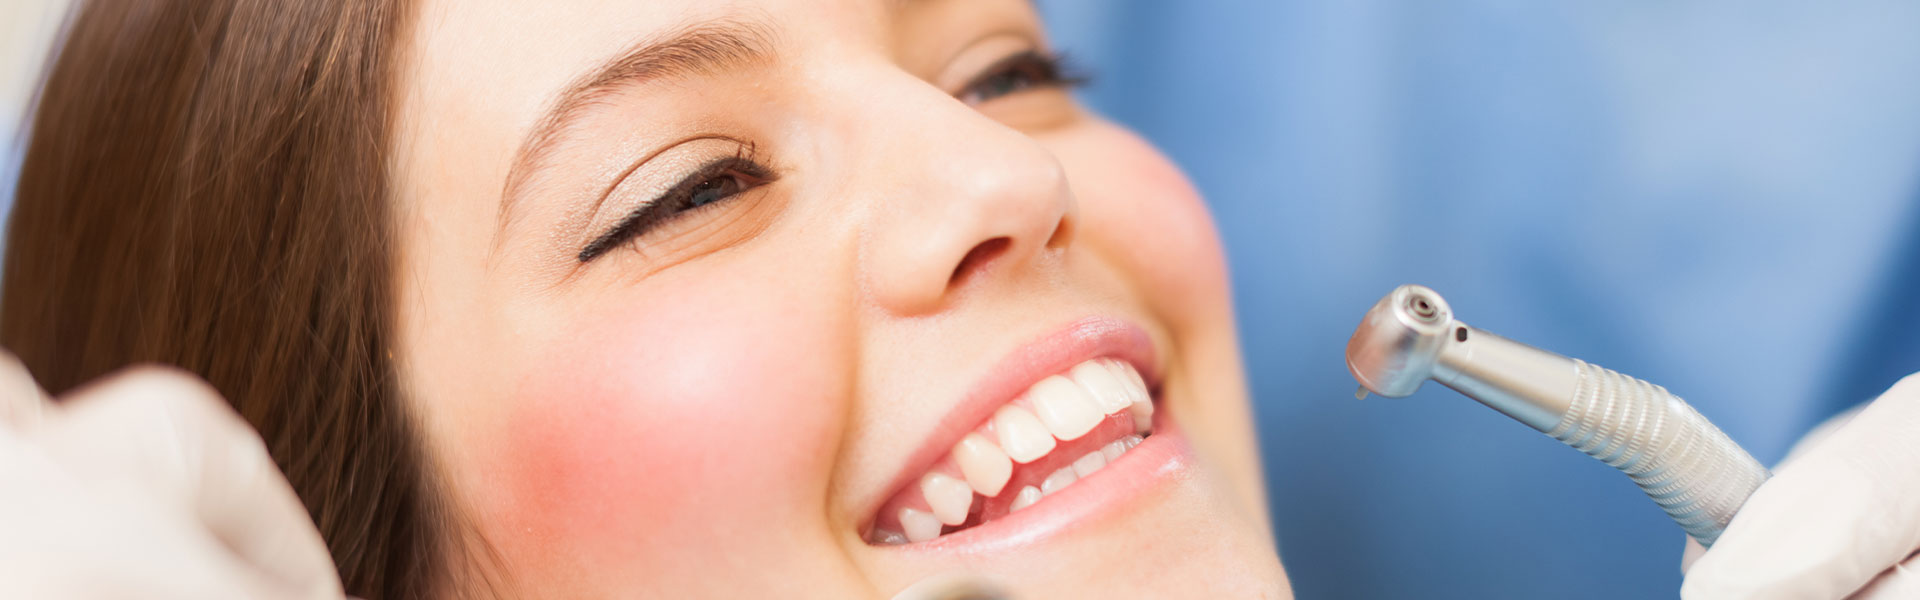 A woman is smiling at dental